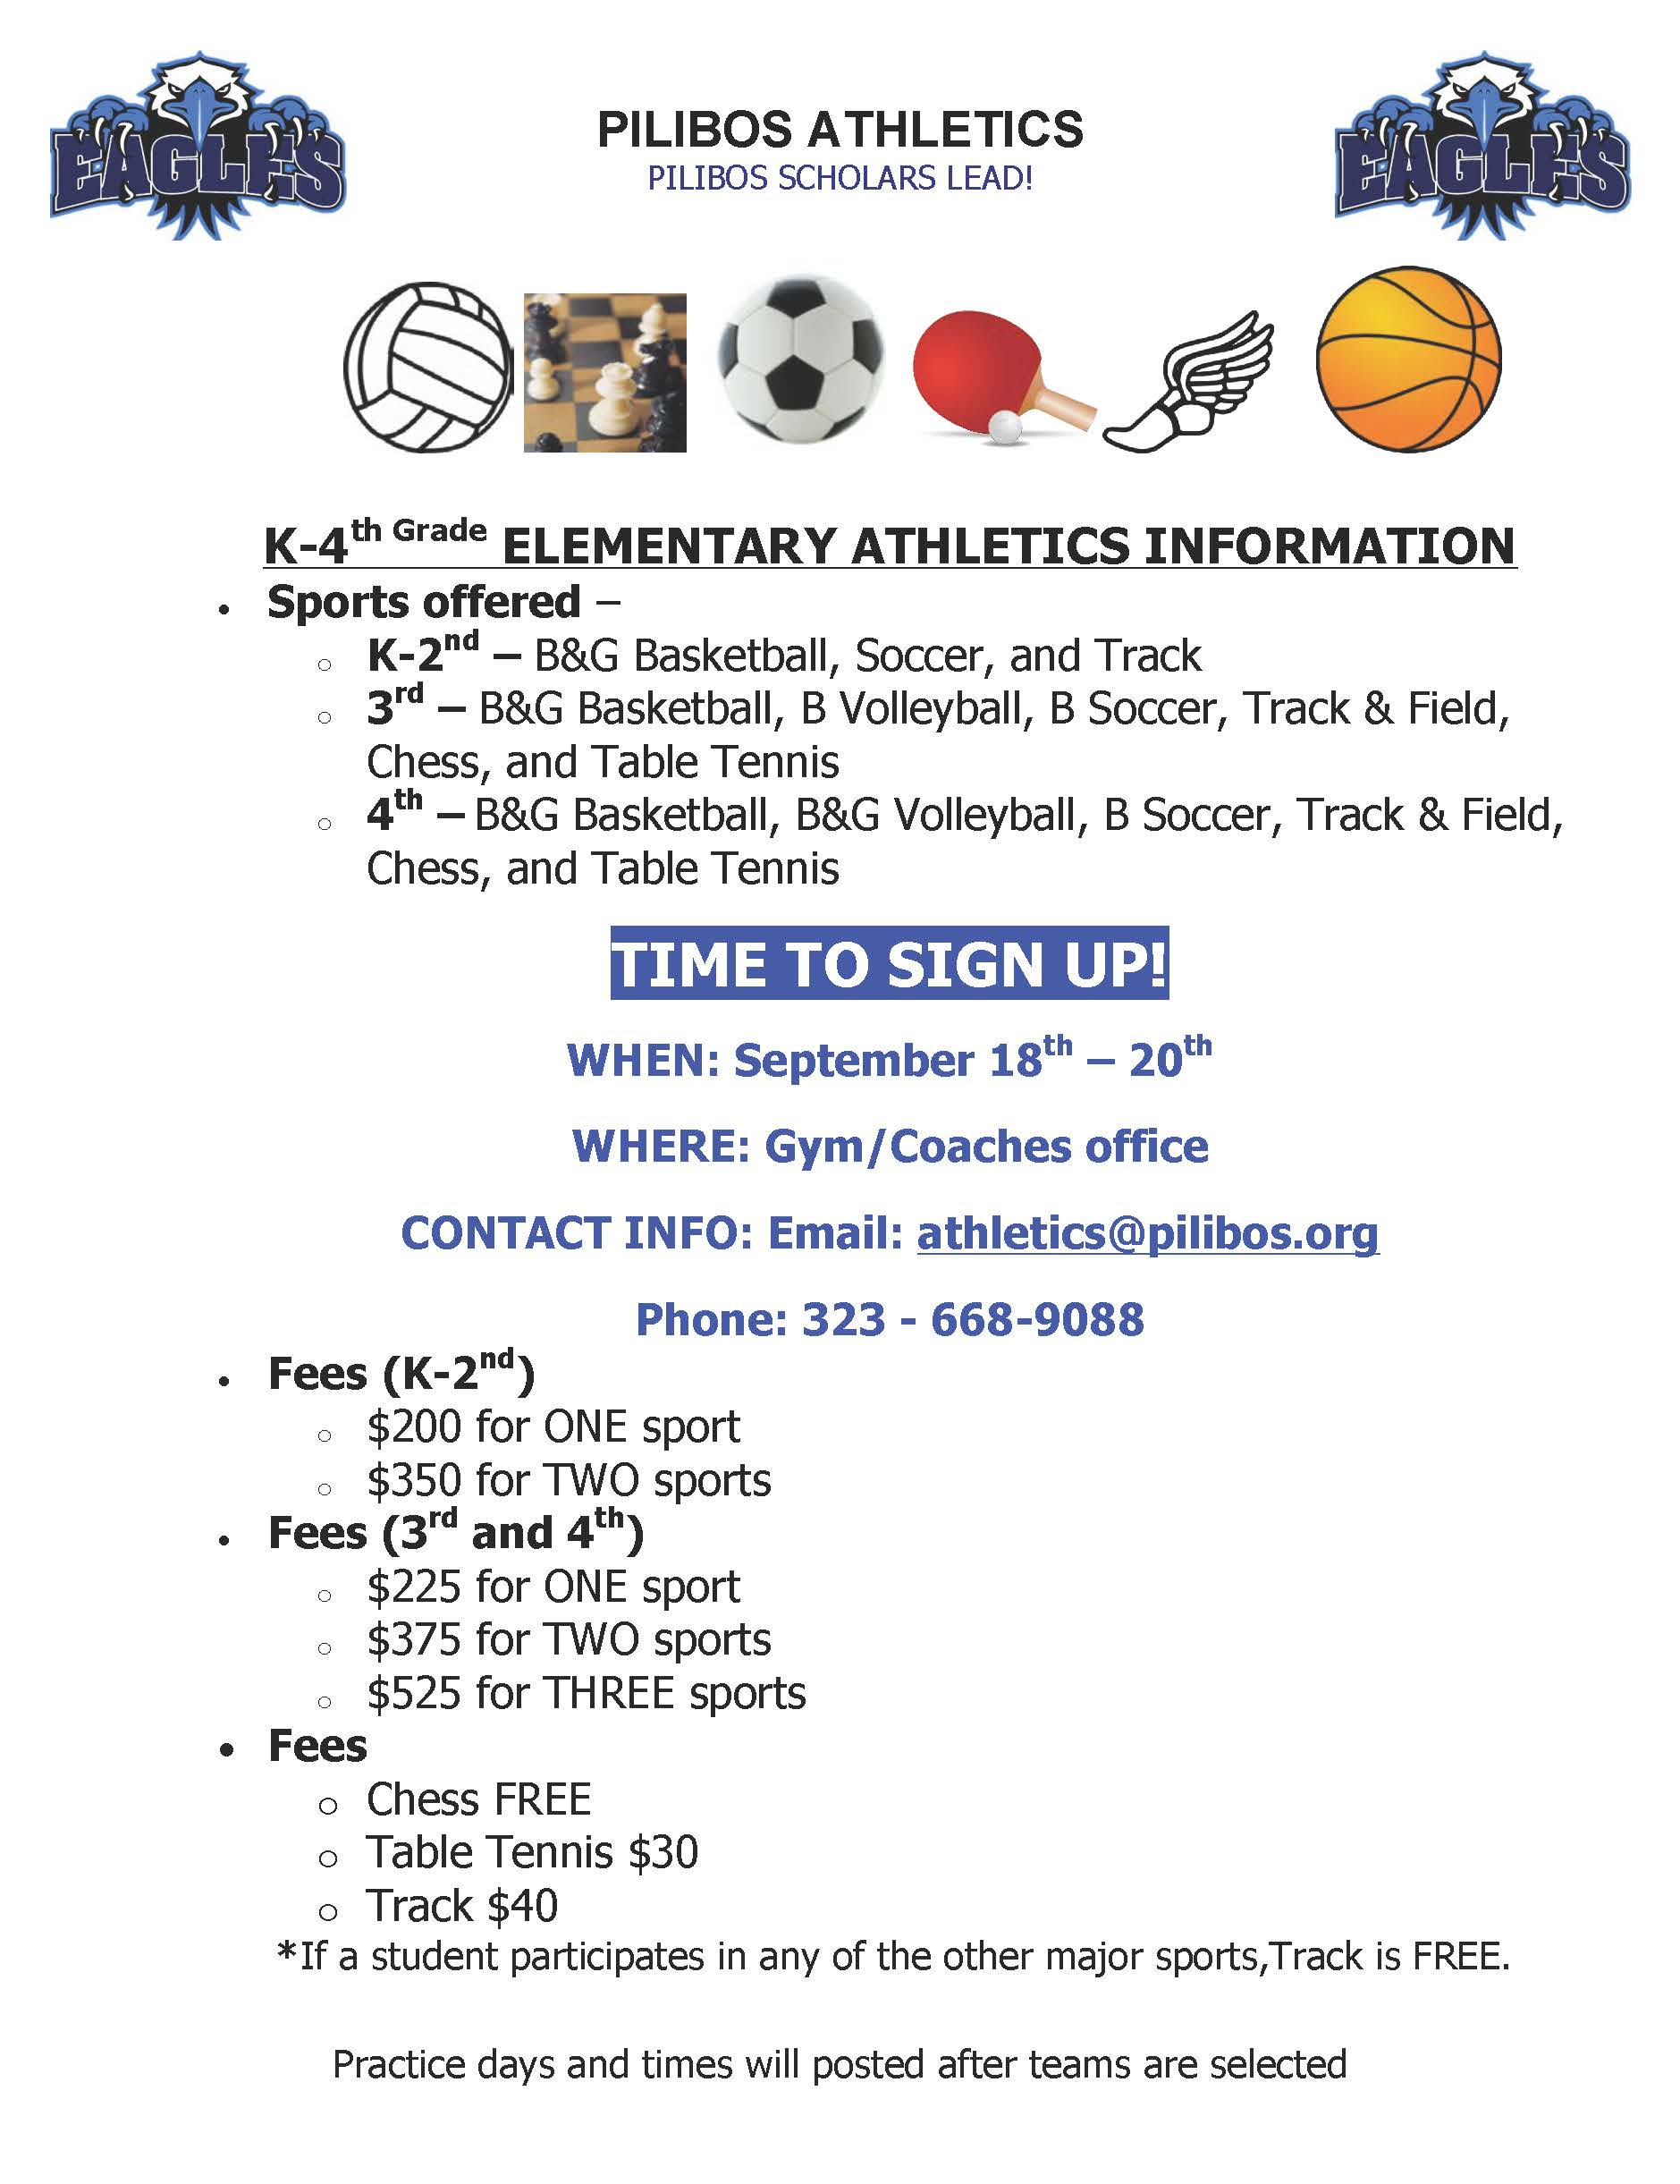 ELEMENTARY_ATHLETICS_TRYOUT_DATES.jpg